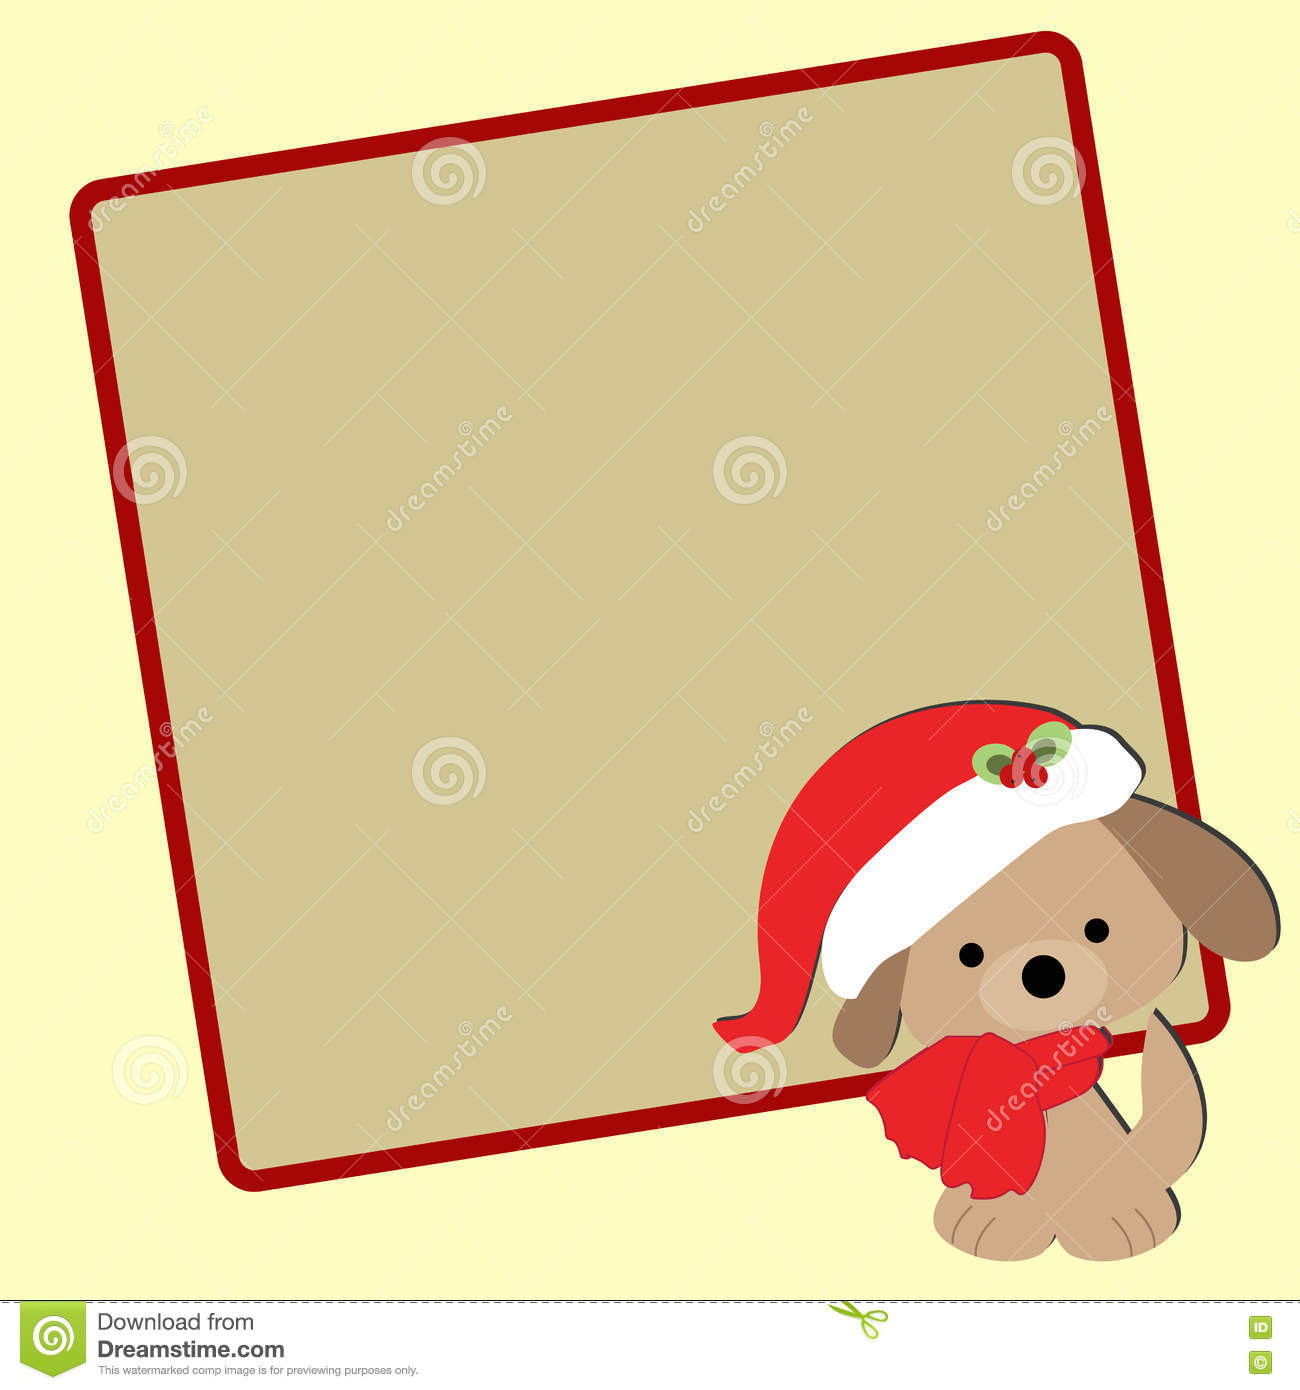 Cute Baby Christmas Frame With A Puppy In A Santa Hat. Stock Vector ...